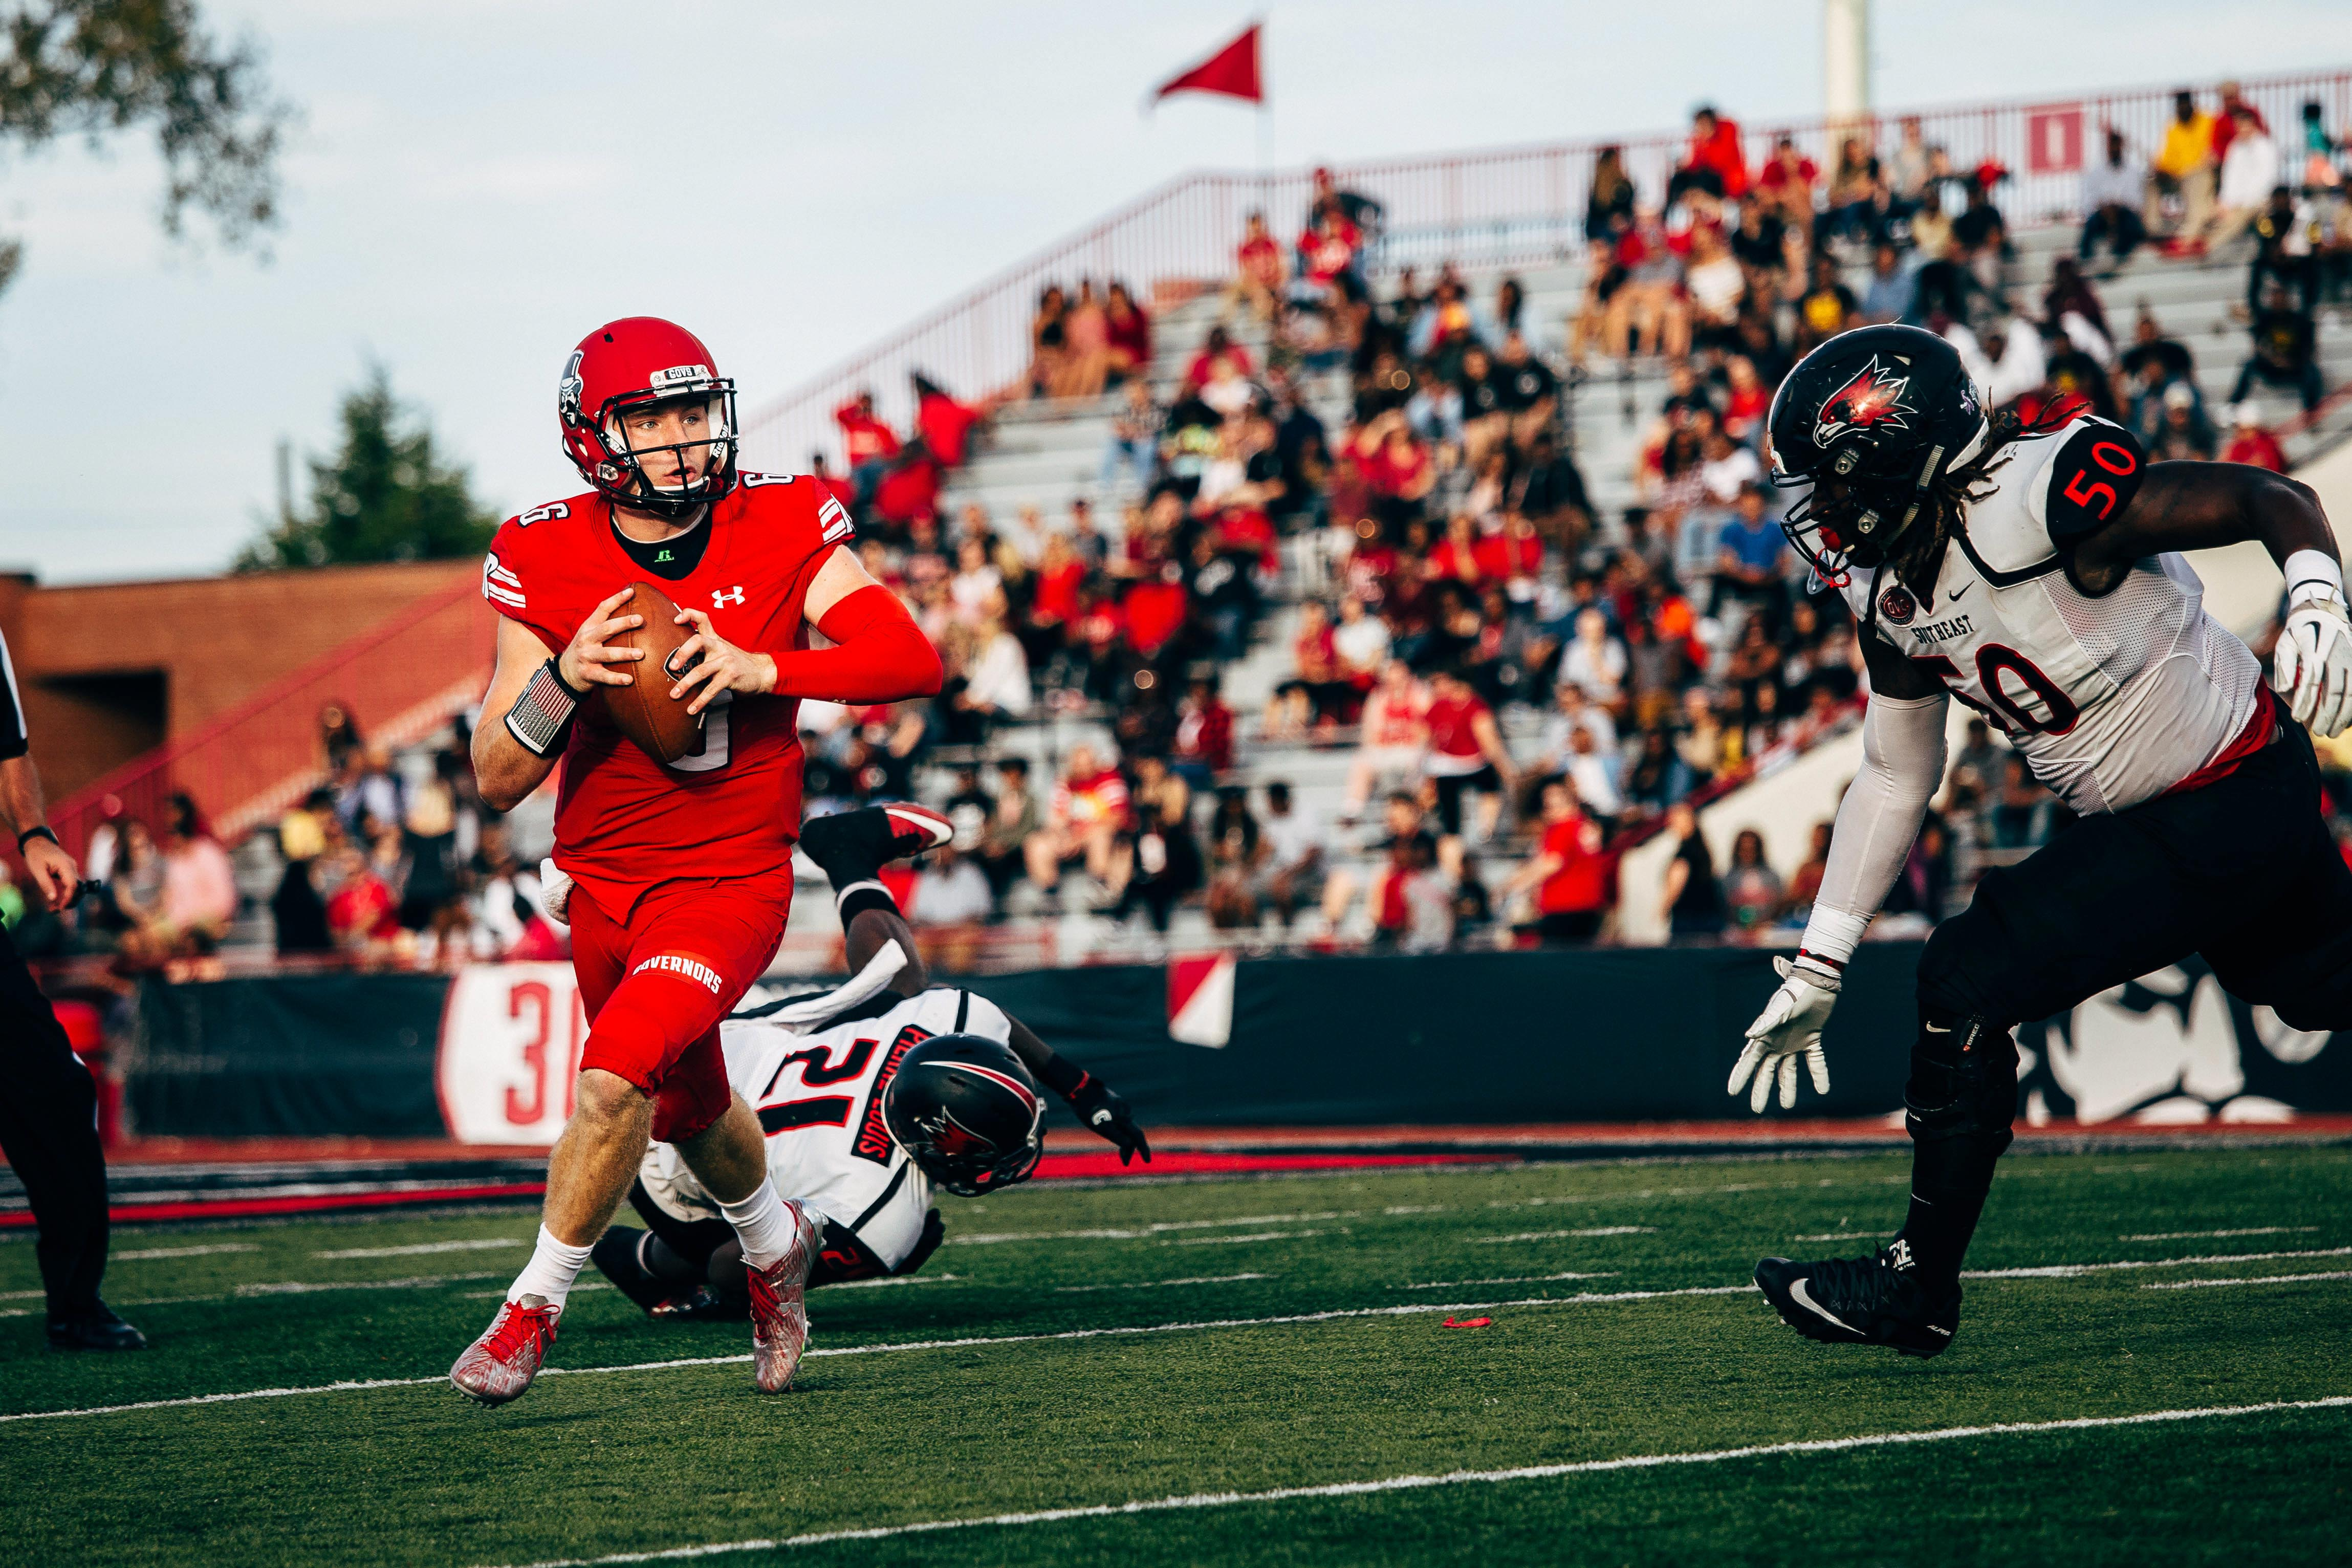 Quarterback Jeremiah Oatsvall rolls out of the pocket during a 2017 game against Southeast Missouri State. | THE ALL STATE ARCHIVES